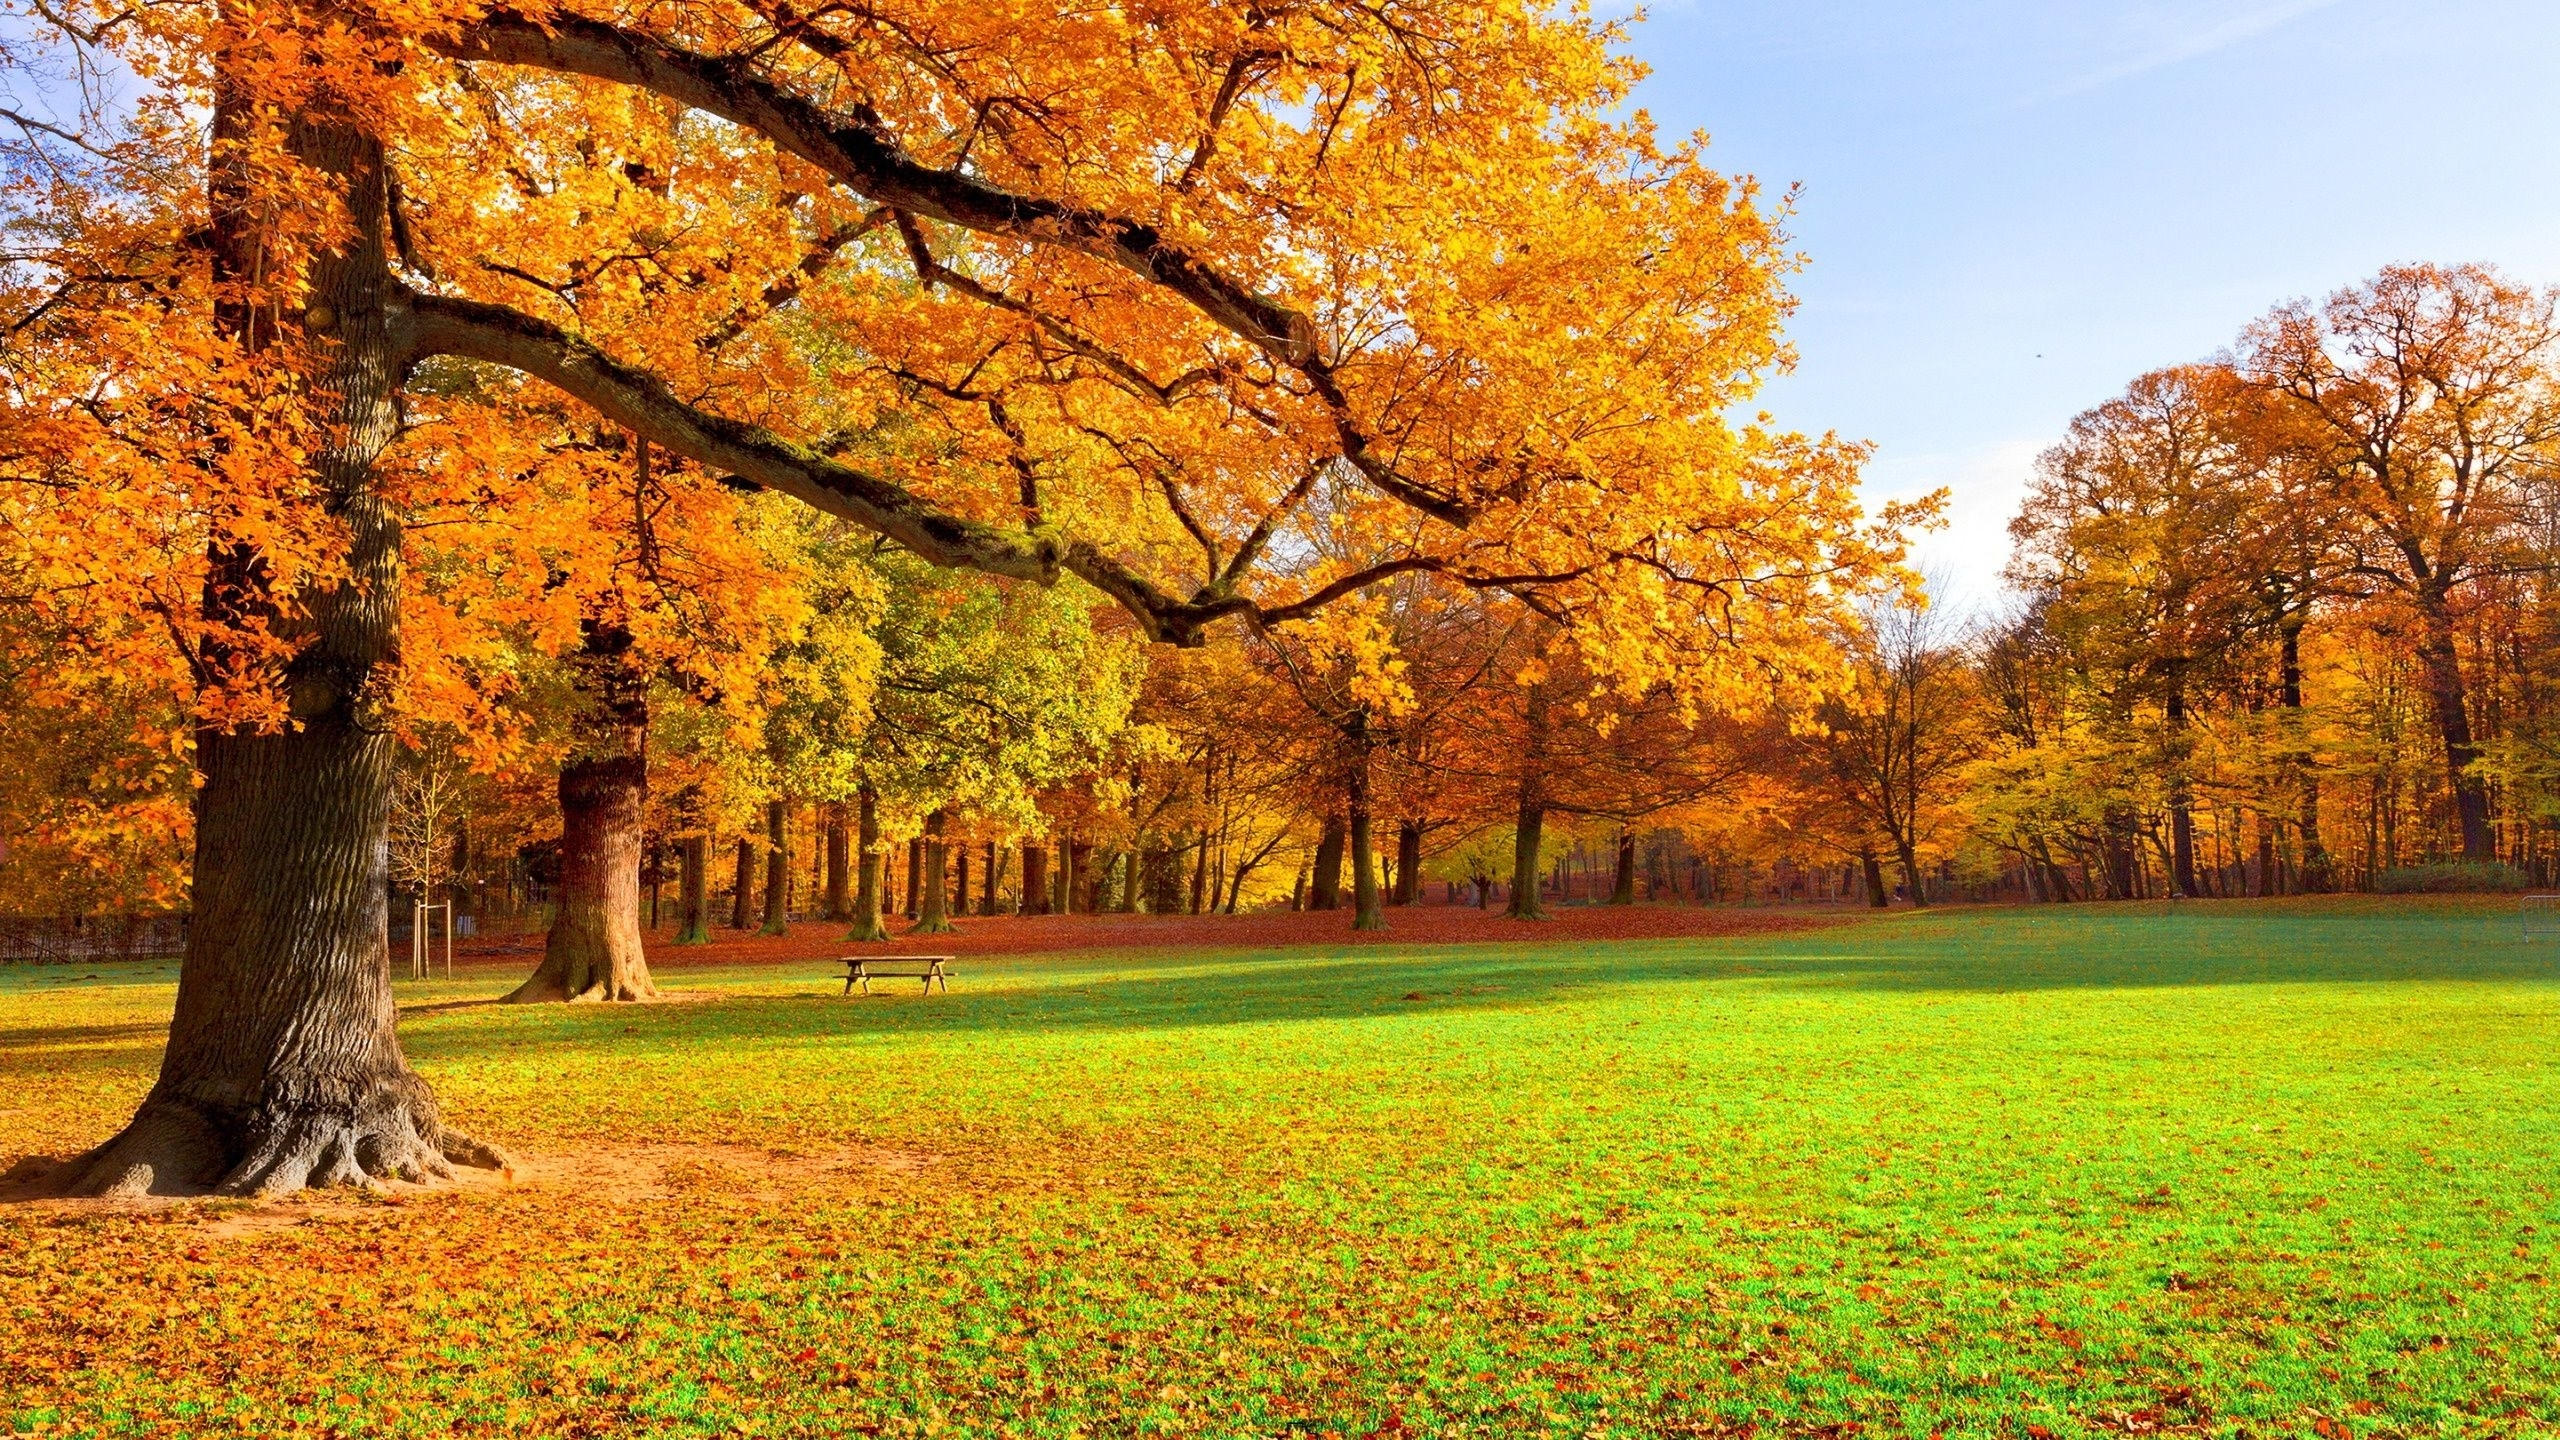 autumn scenery wallpaper hd picture gallery - imagefiesta